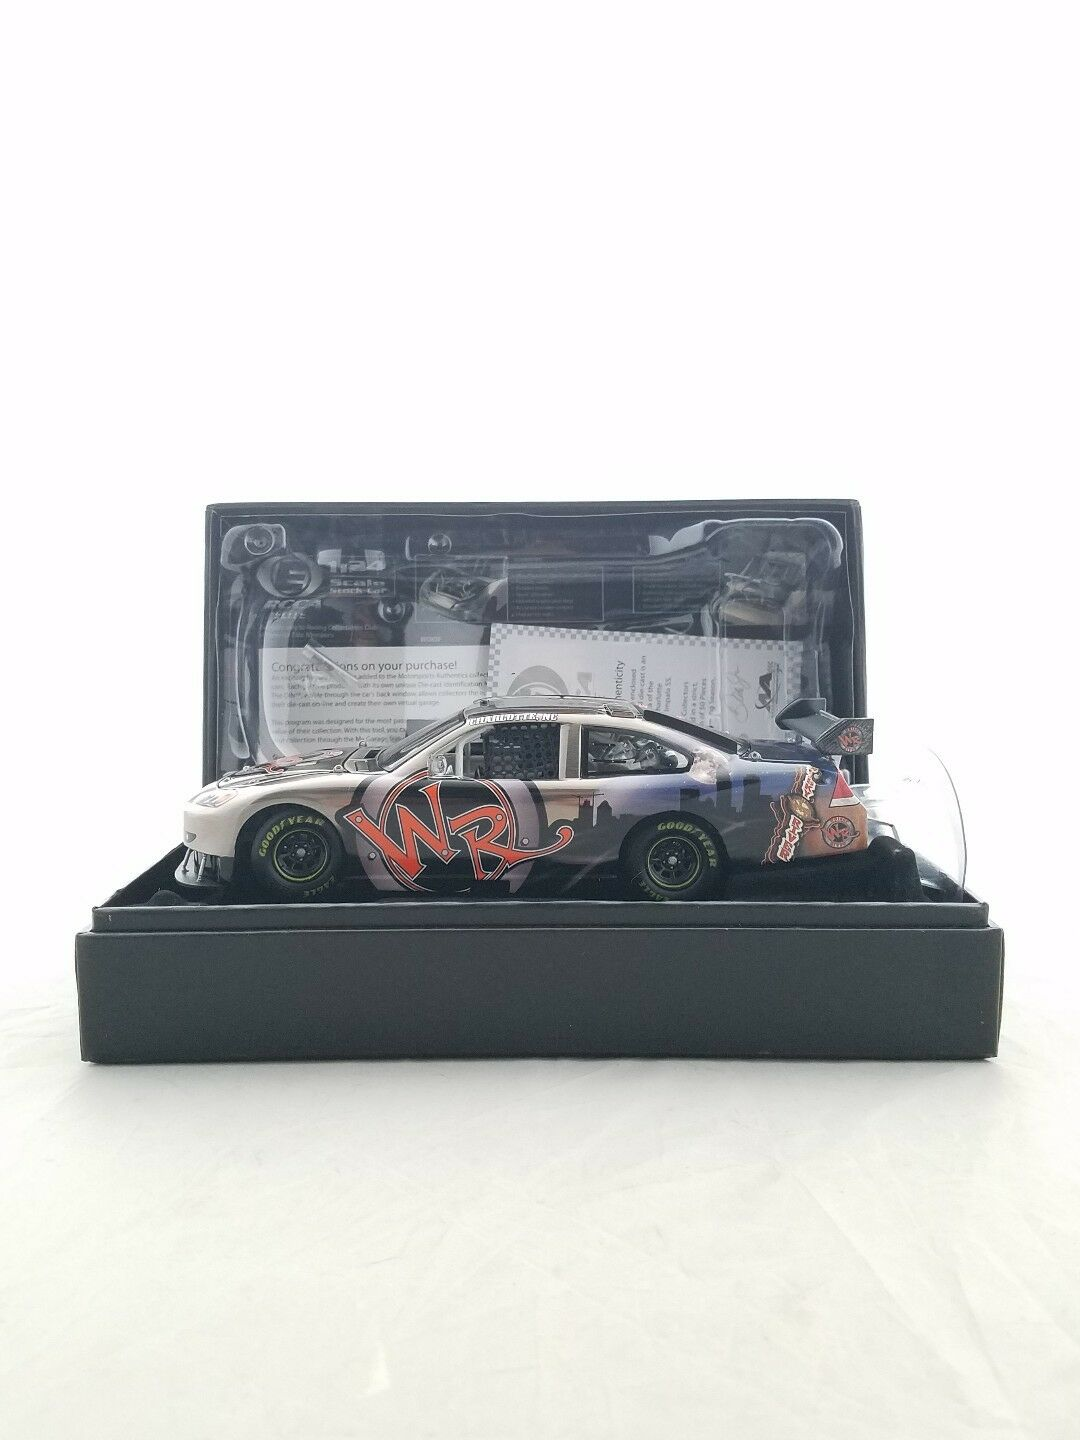 2009 Dale Earnhardt Jr. Jr. Jr. Whisky River Impala SS Brushed Metal 1 24 RCCA Elite 2a3ba8